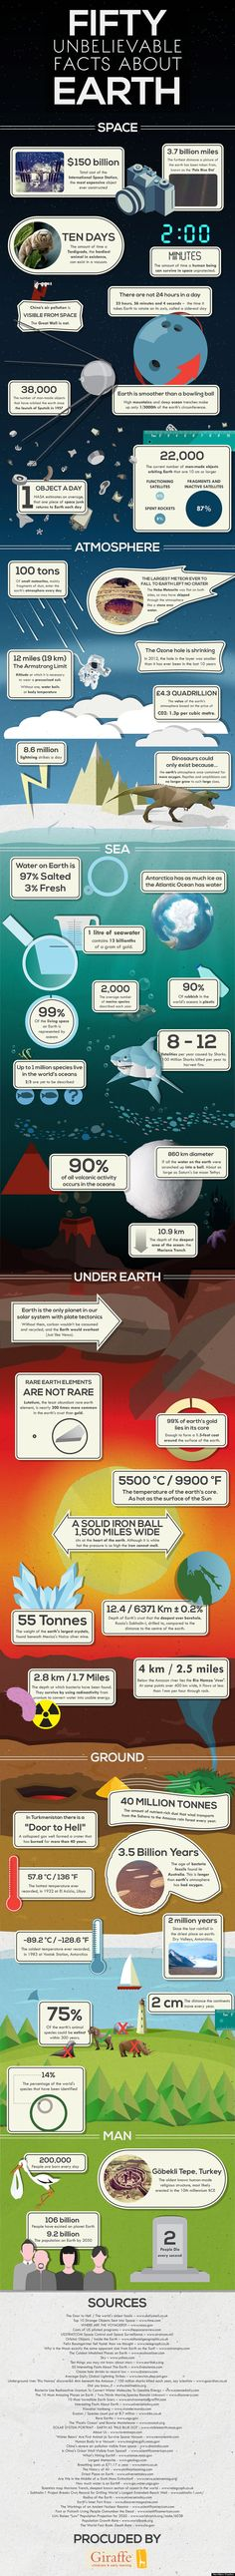 Fifty Amazing Facts About Earth.  Don't forget to also check out the Space Foundation's Twitter page!